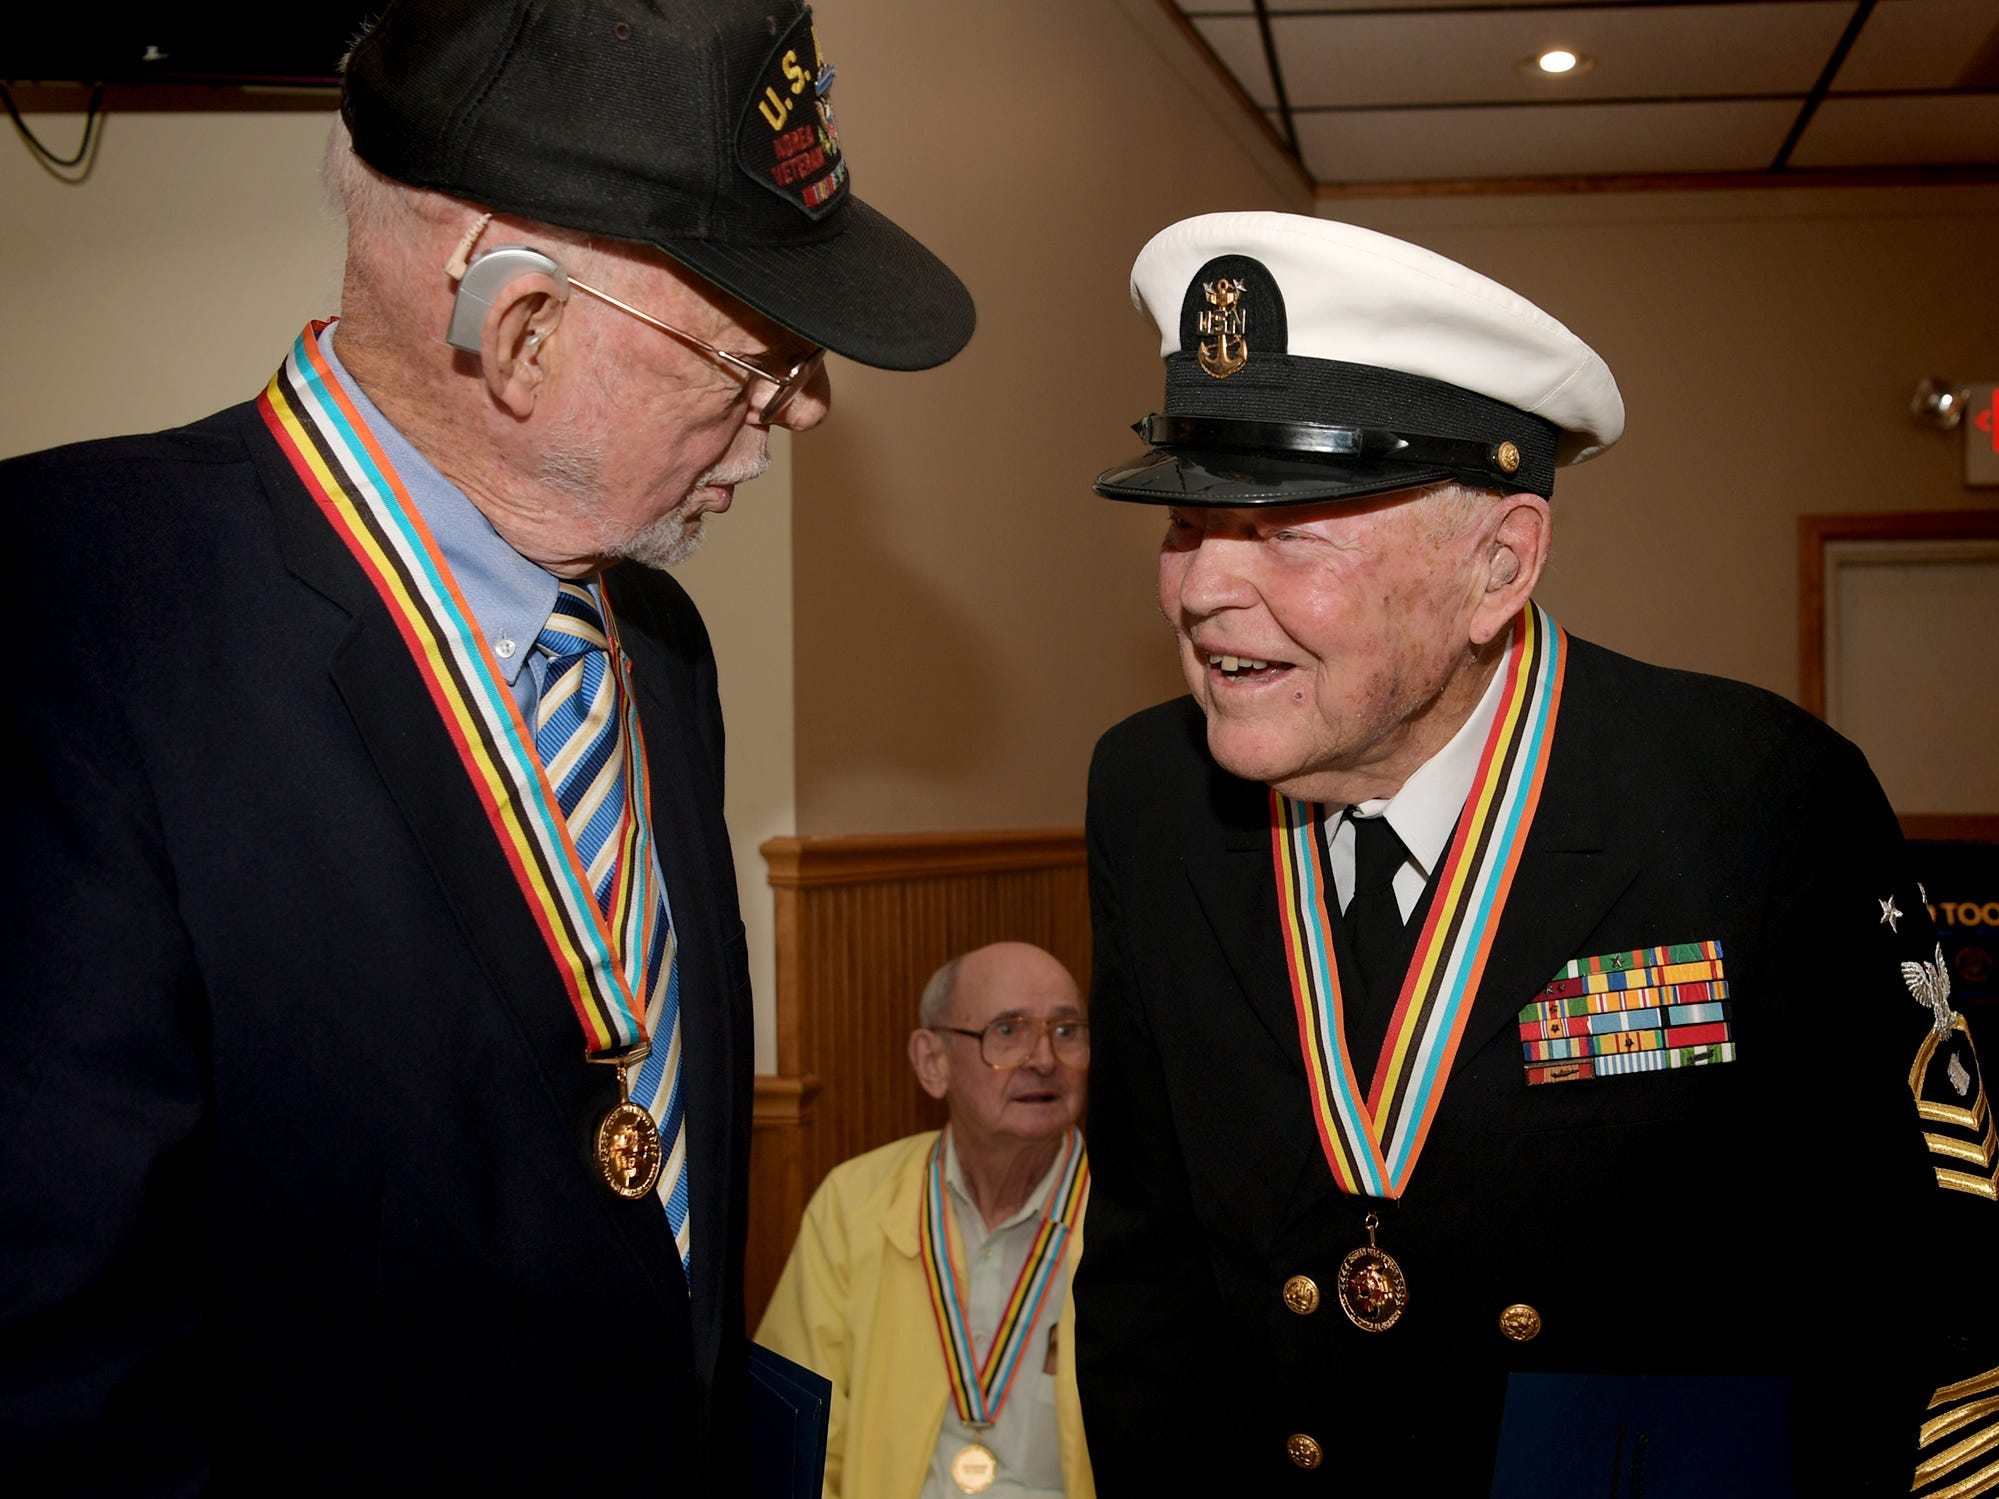 Area Korean War veterans Hal Anderson and Harrison McCann, left, both of Dillsburg, talk after receiving Ambassador for Peace Medals issued by the Korean government during a ceremony at the James A. Danner VFW Post #537 in Newberry Township Thursday, Sept. 27, 2018. The event was sponsored by PA State Representative Dawn Keefer in conjunction with U.S. Senator Pat Toomey's office, which assisted in procuring the medals. Bill Kalina photo